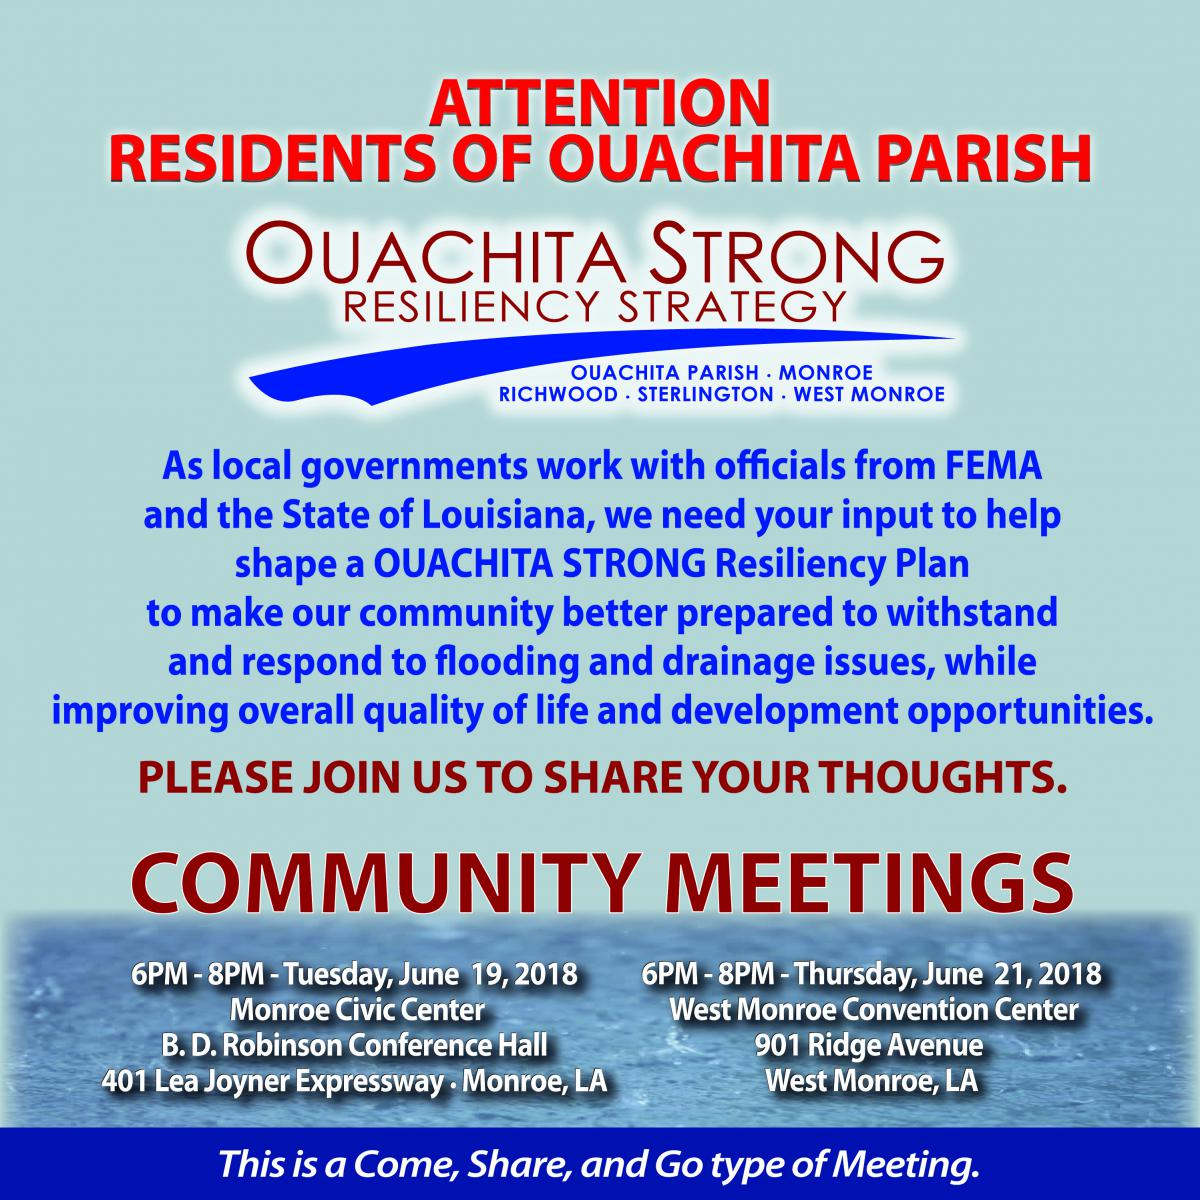 Ouachita Strong Resiliency Strategy - Community Meeting